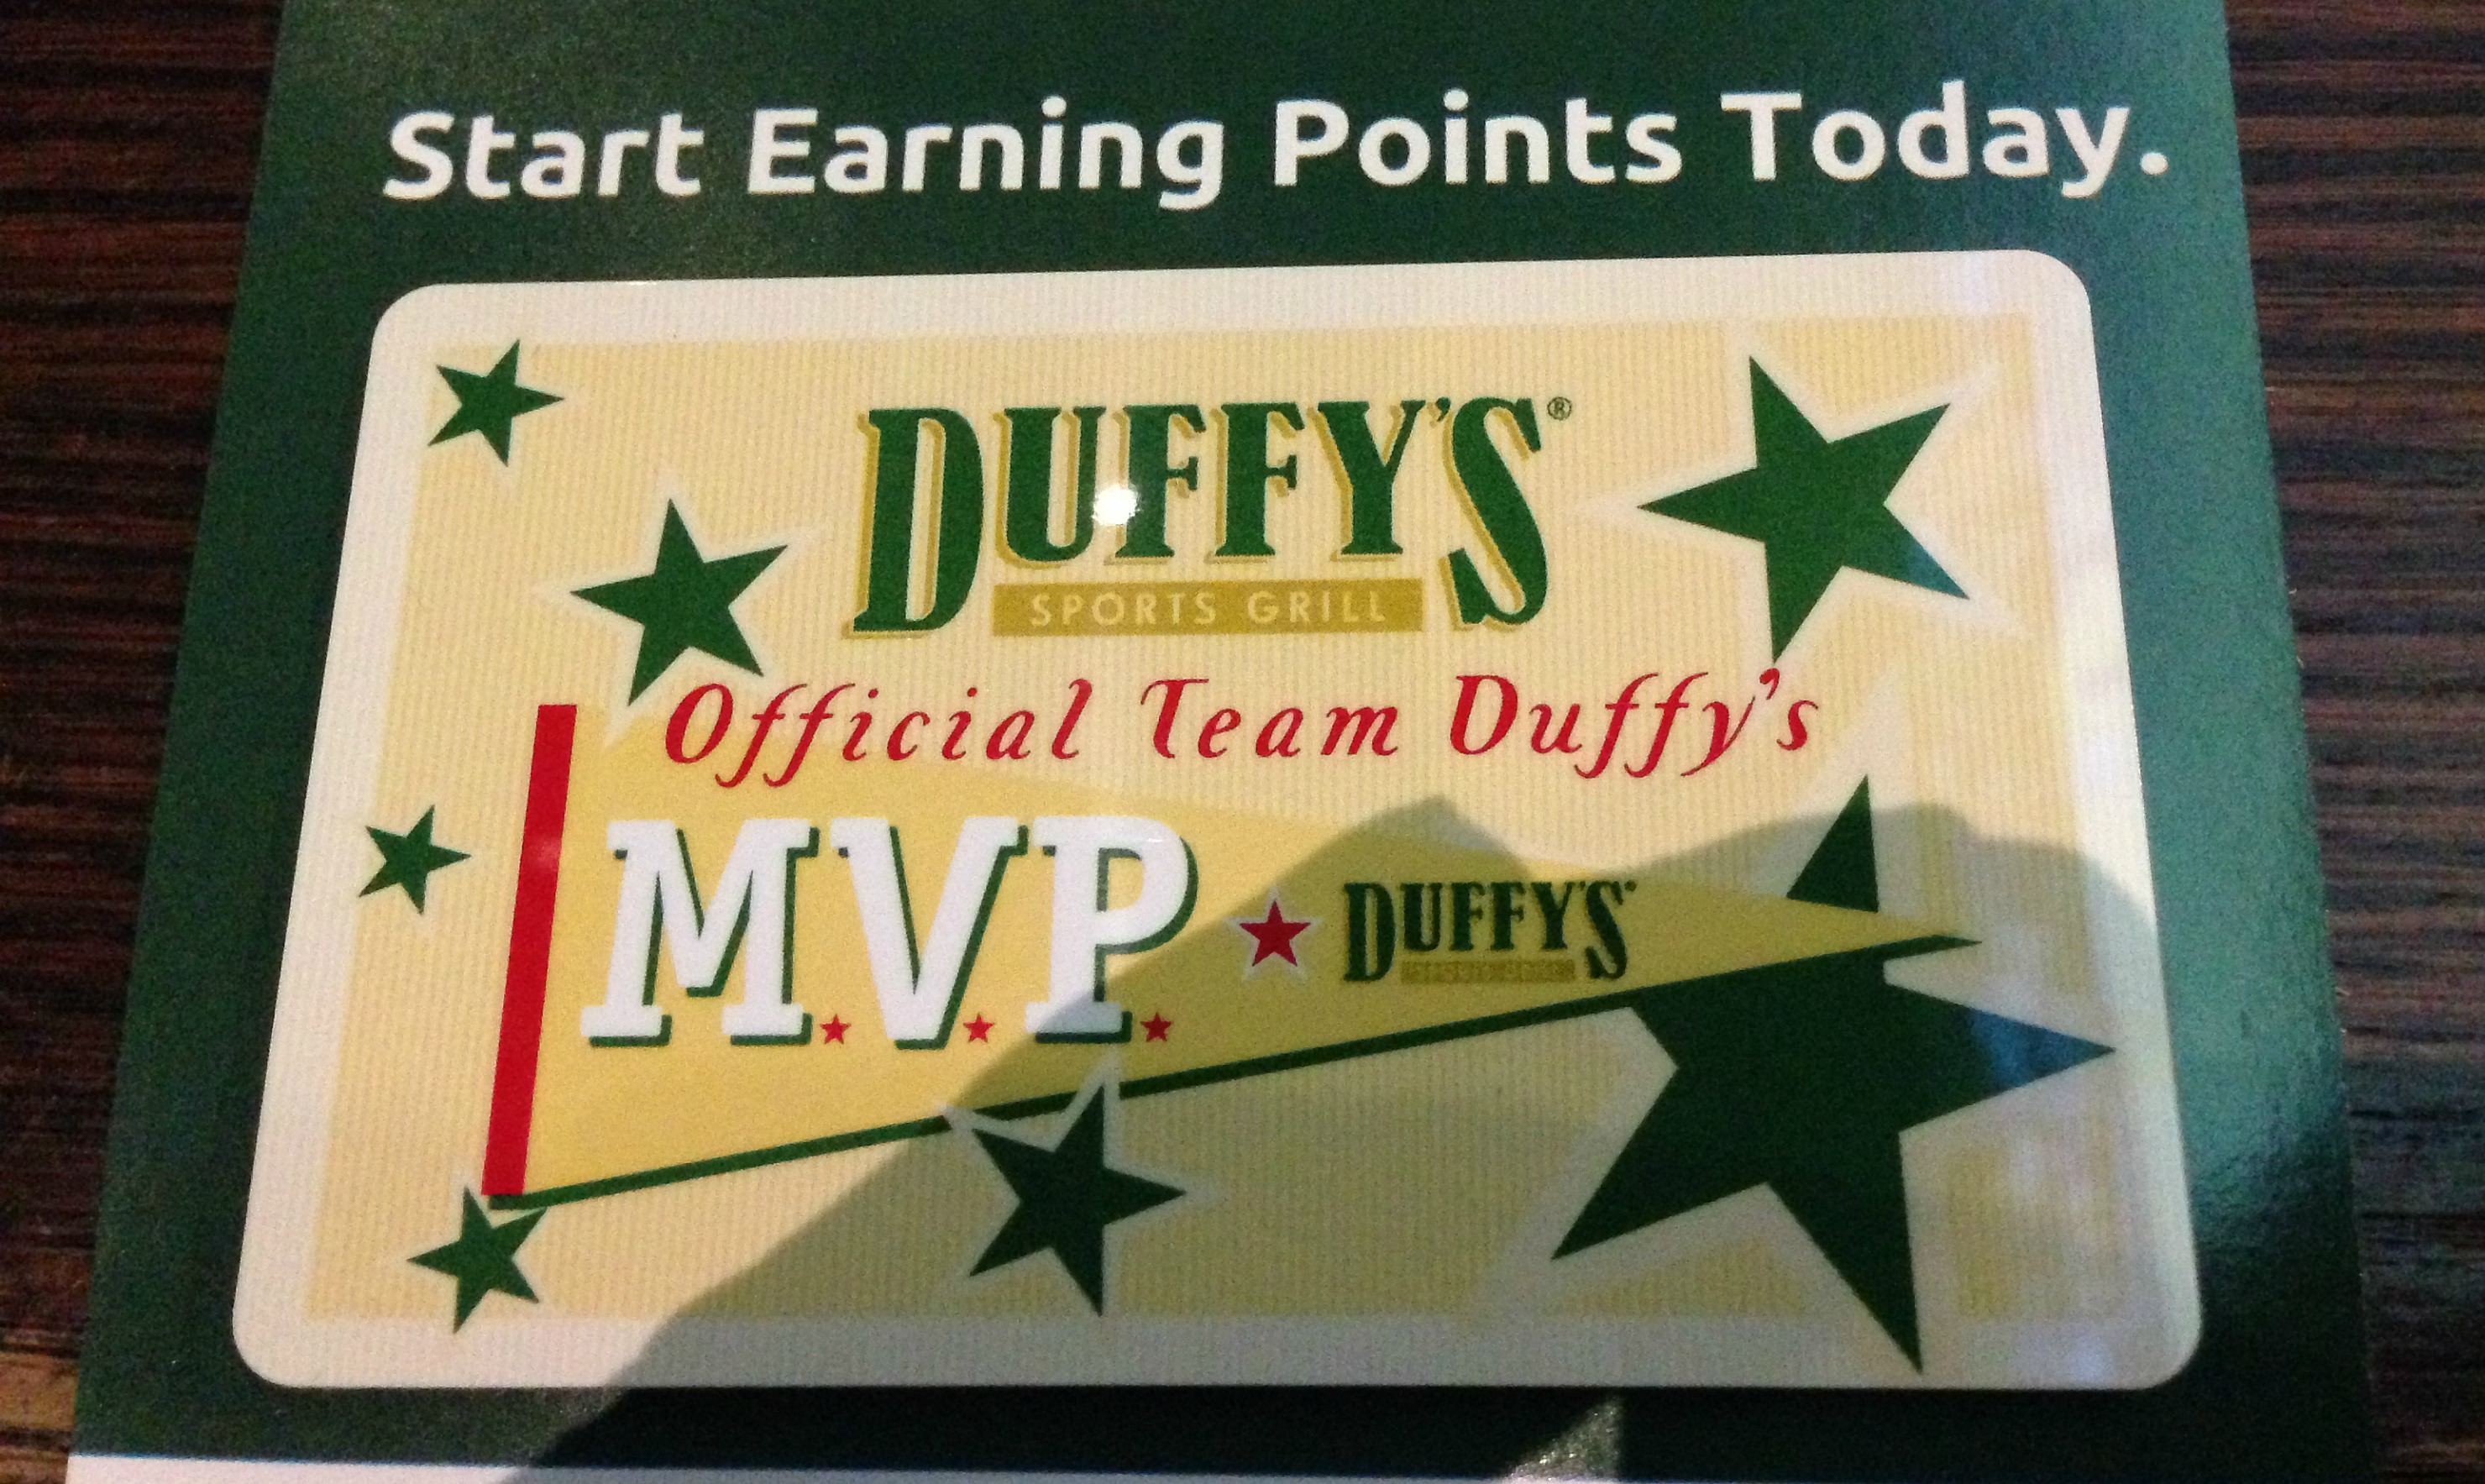 duffy's sports grill fort lauderdale florida